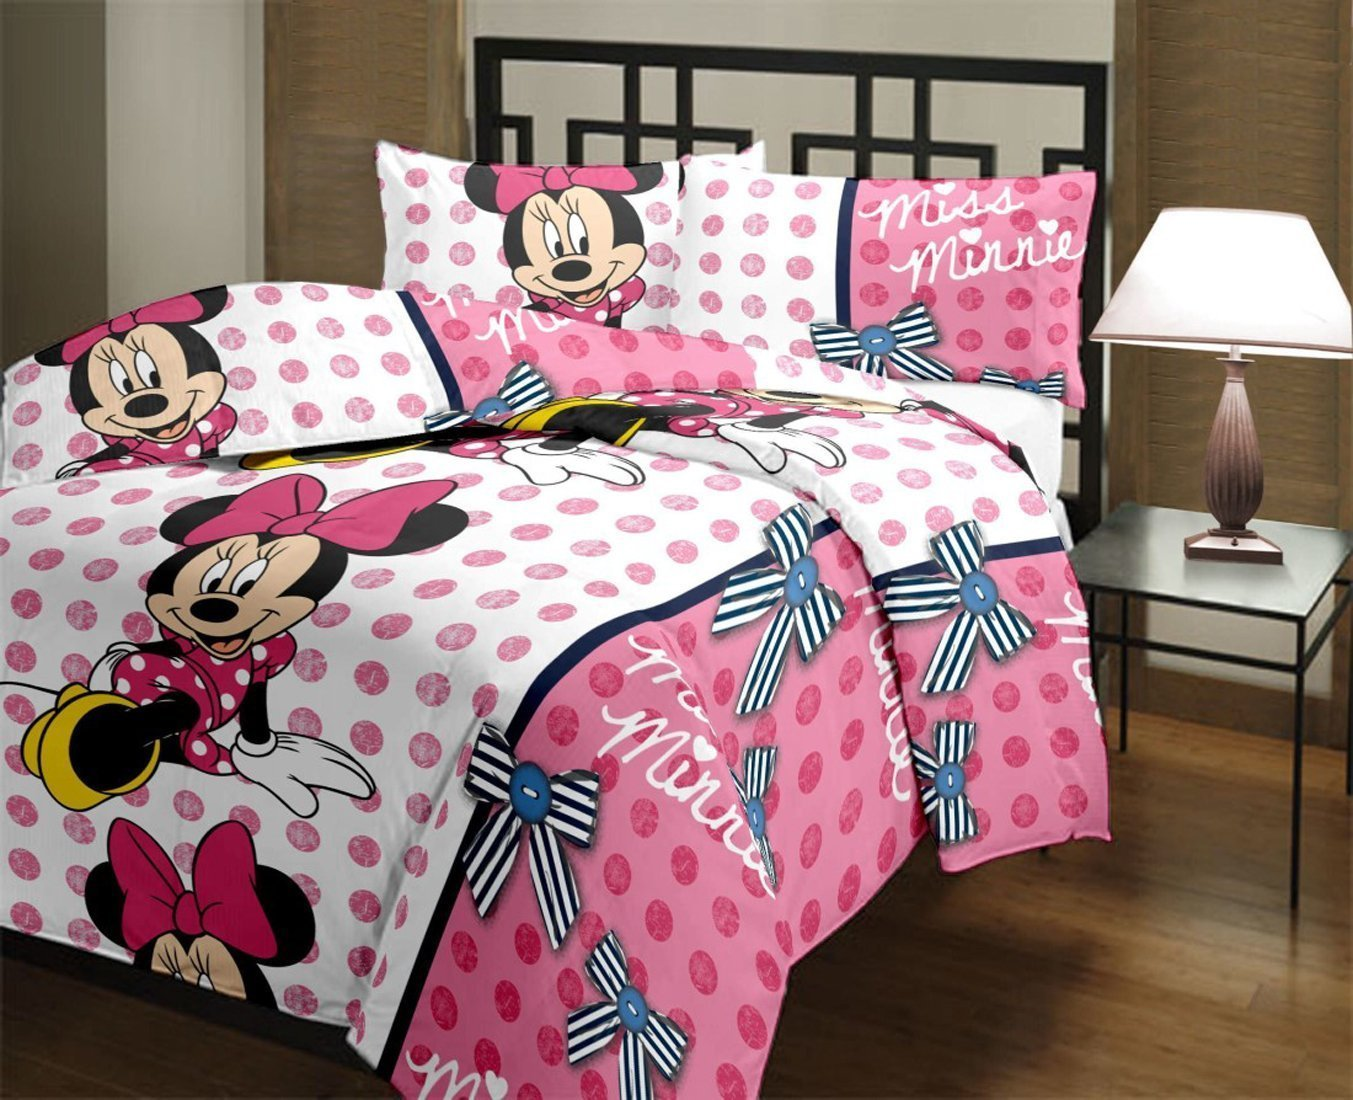 Minnie Mouse Printed Polycotton Single Size Blanket (Pink)